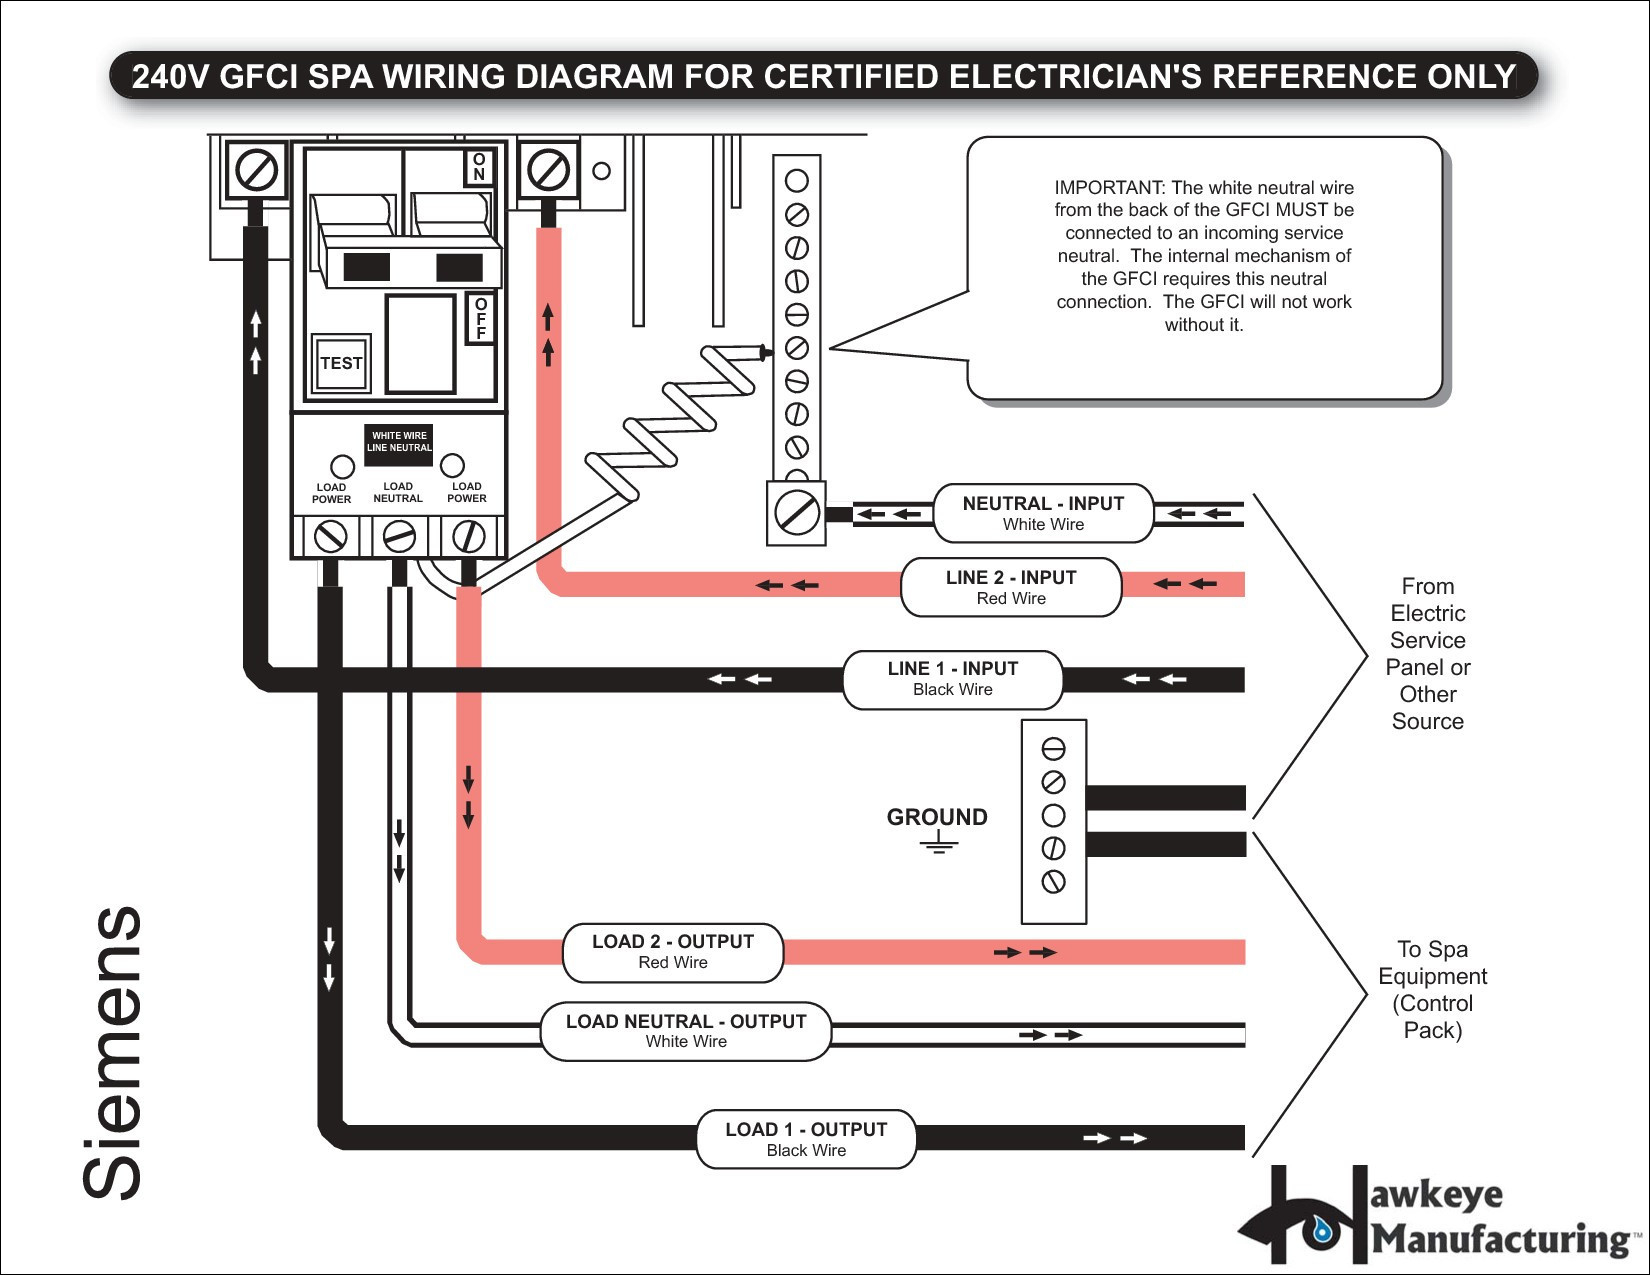 Wiring Diagram Gfci Breaker Example Of Wiring Diagram Gfci Outlet - 2 Pole Gfci Breaker Wiring Diagram